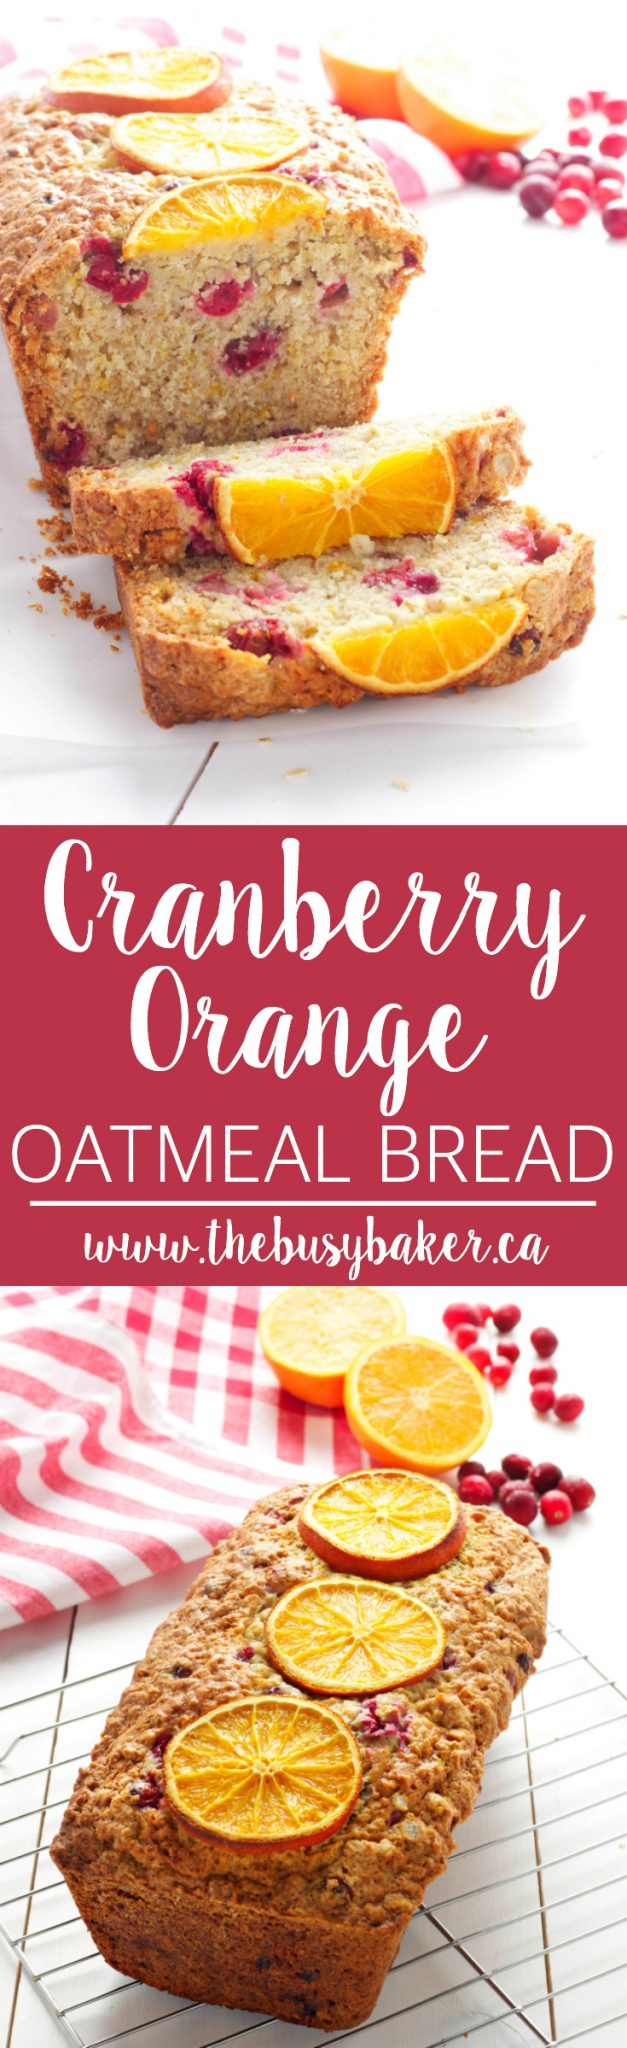 This Cranberry Orange Oatmeal Bread is the perfect sweet recipe for fall and winter, featuring fresh cranberries and sweet orange! Recipe from thebusybaker.ca! via @busybakerblog